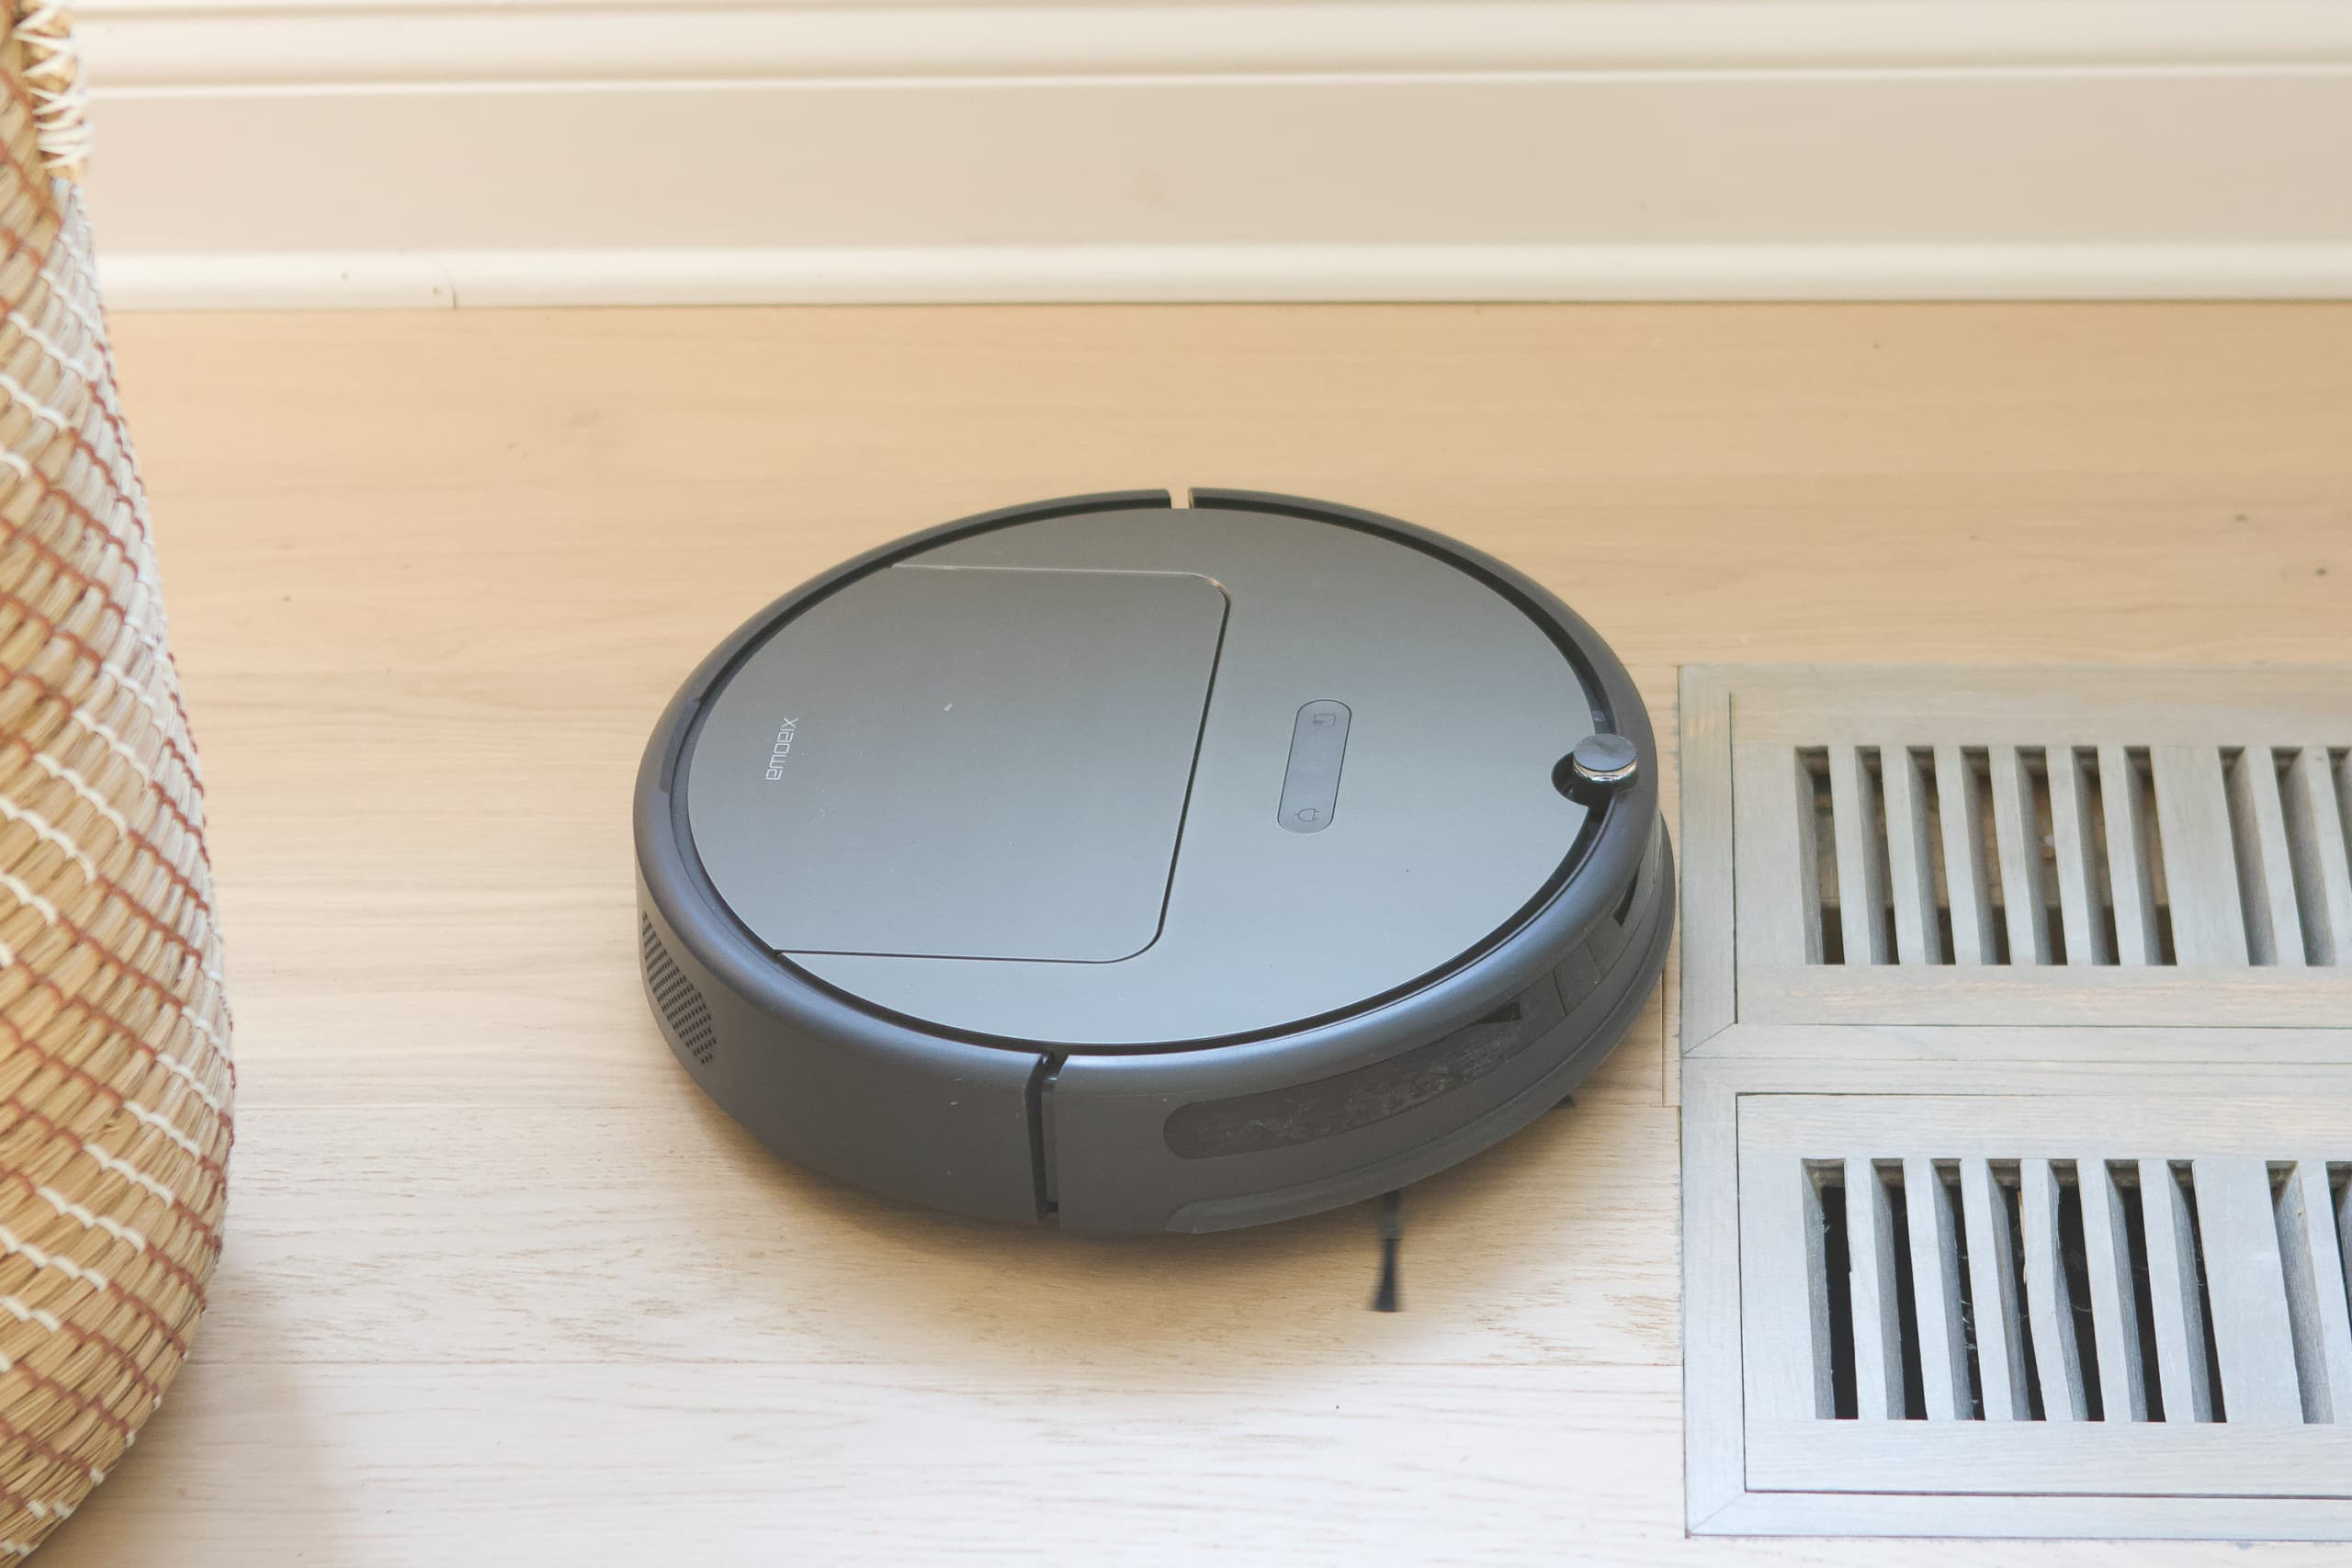 My quest for the best robot vacuum